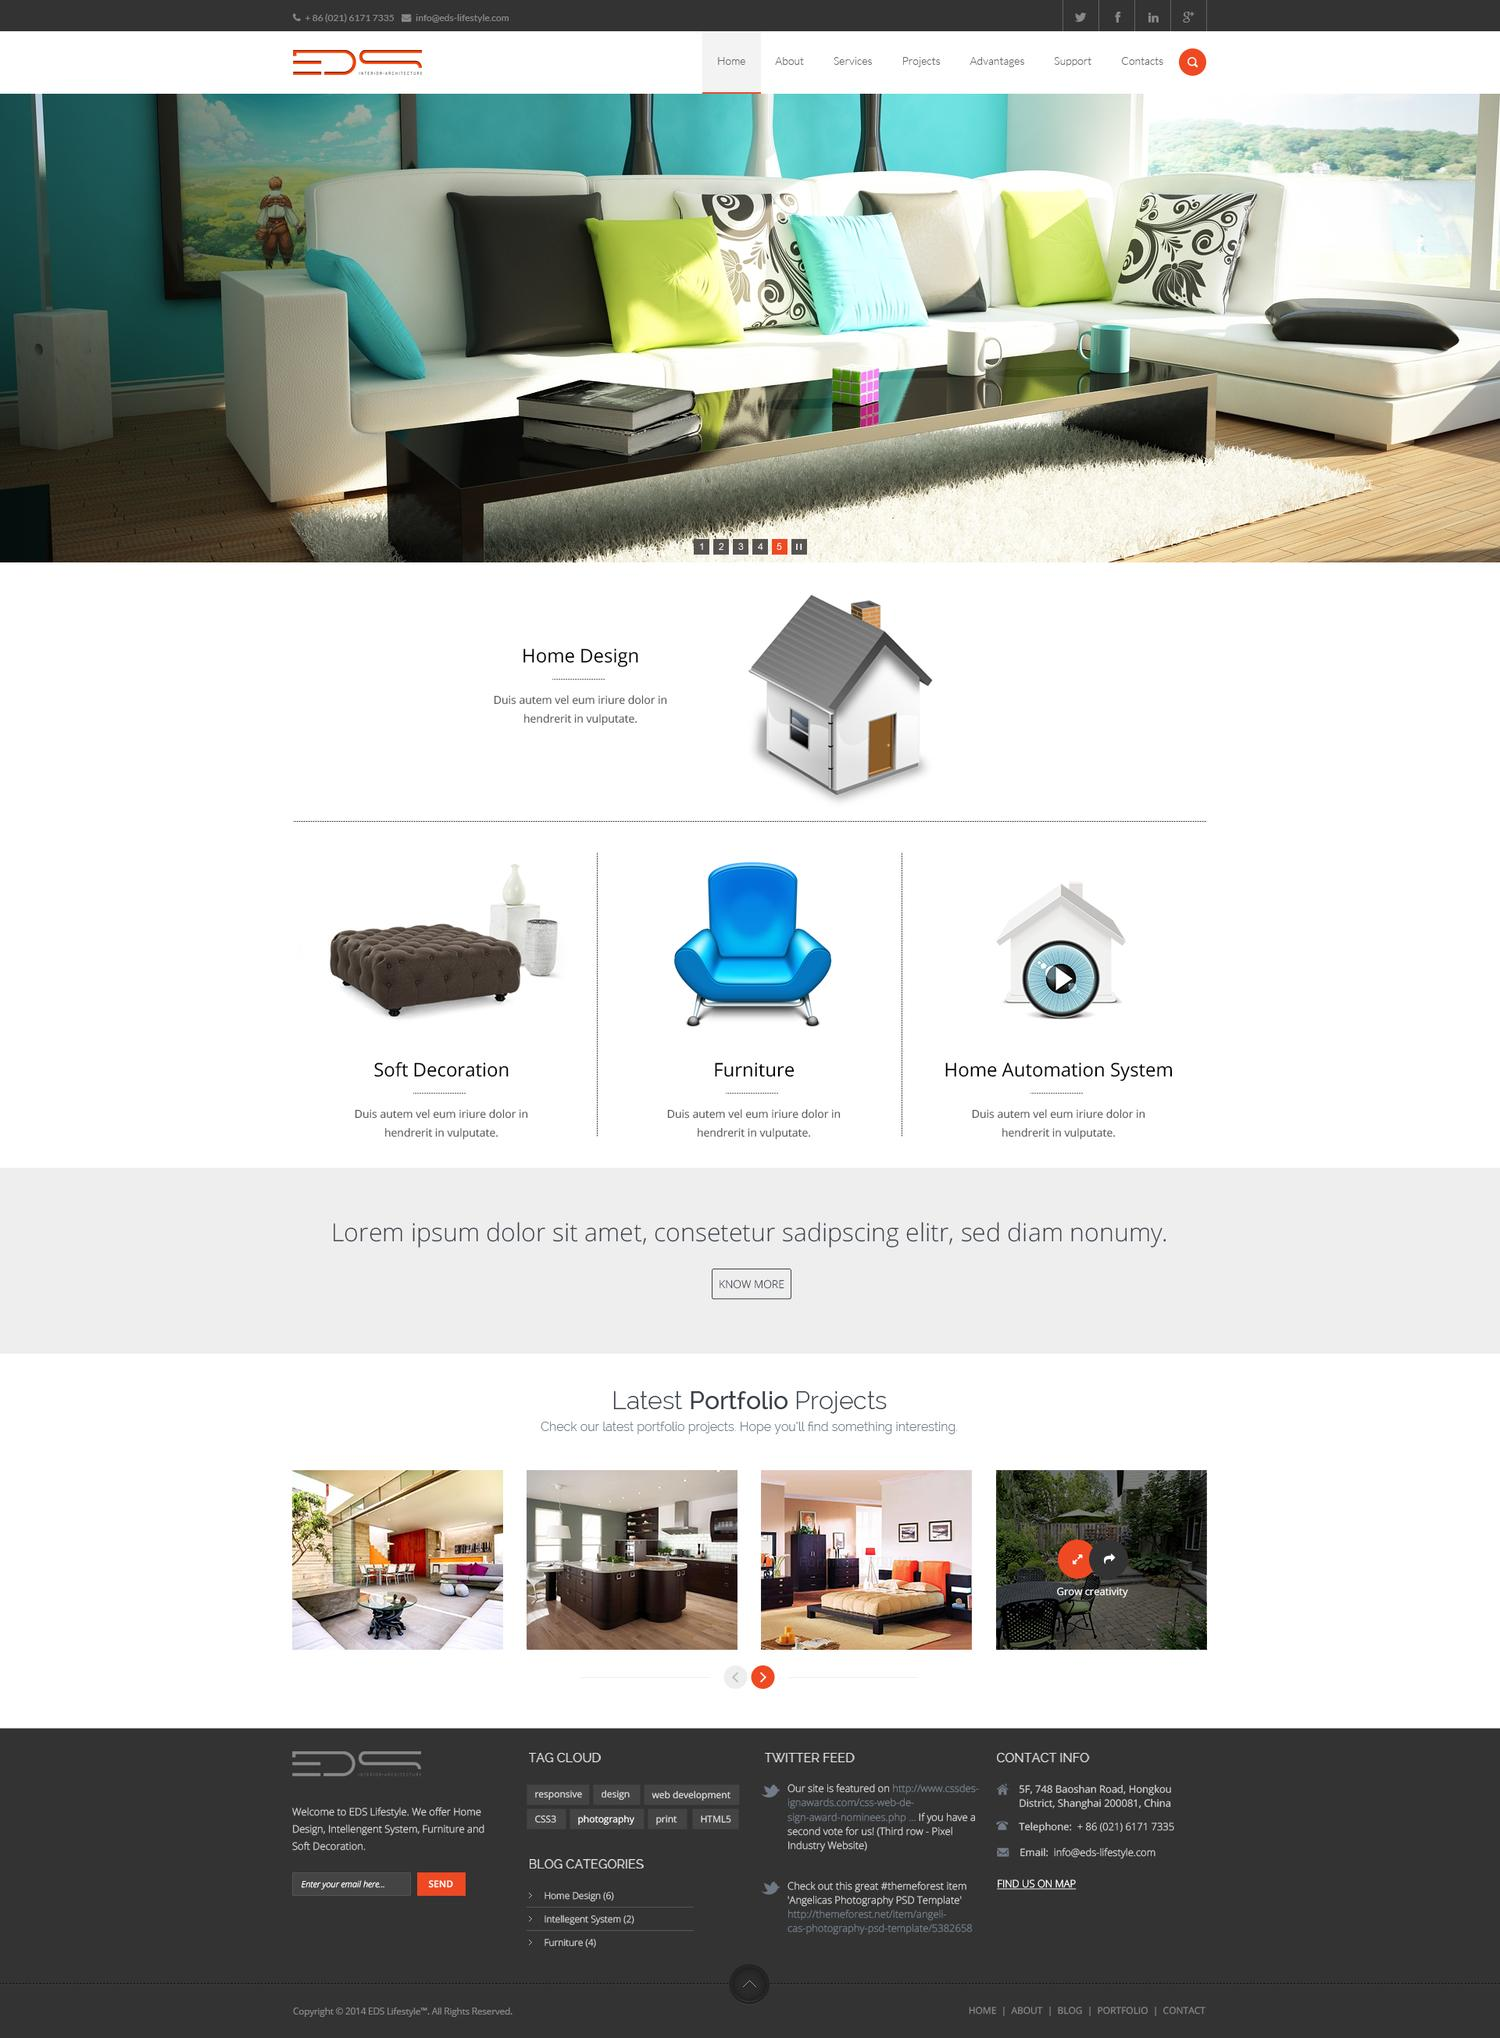 Professional Website Design PSD by sumonreja - 97982